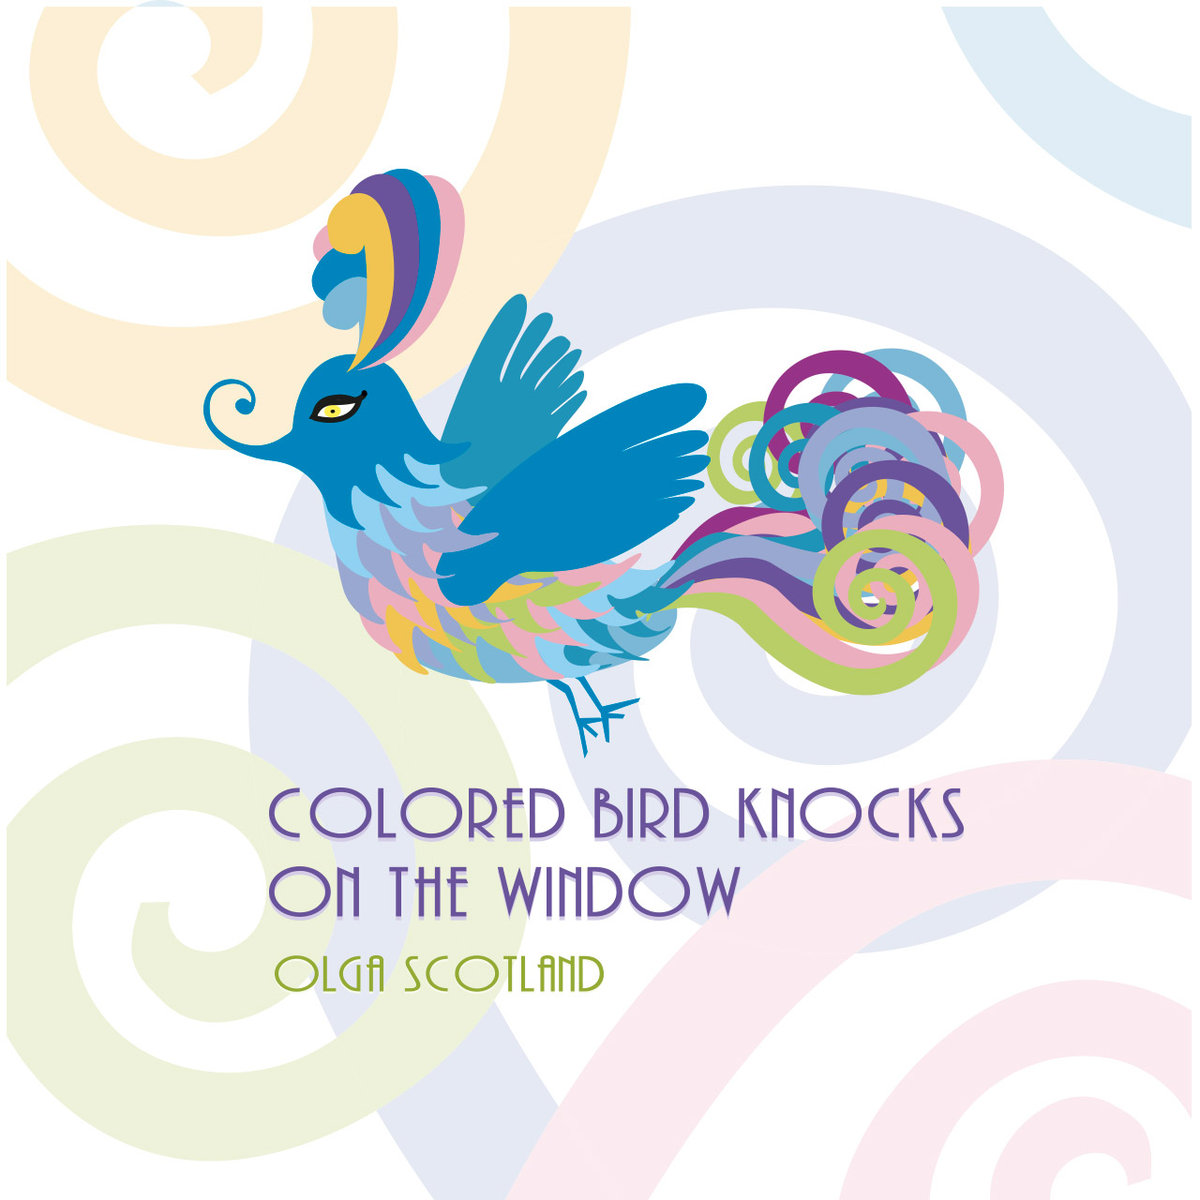 Olga Scotland - Giraffe @ 'Colored Bird Knocks On The Window' album (soundtrack, ambient)